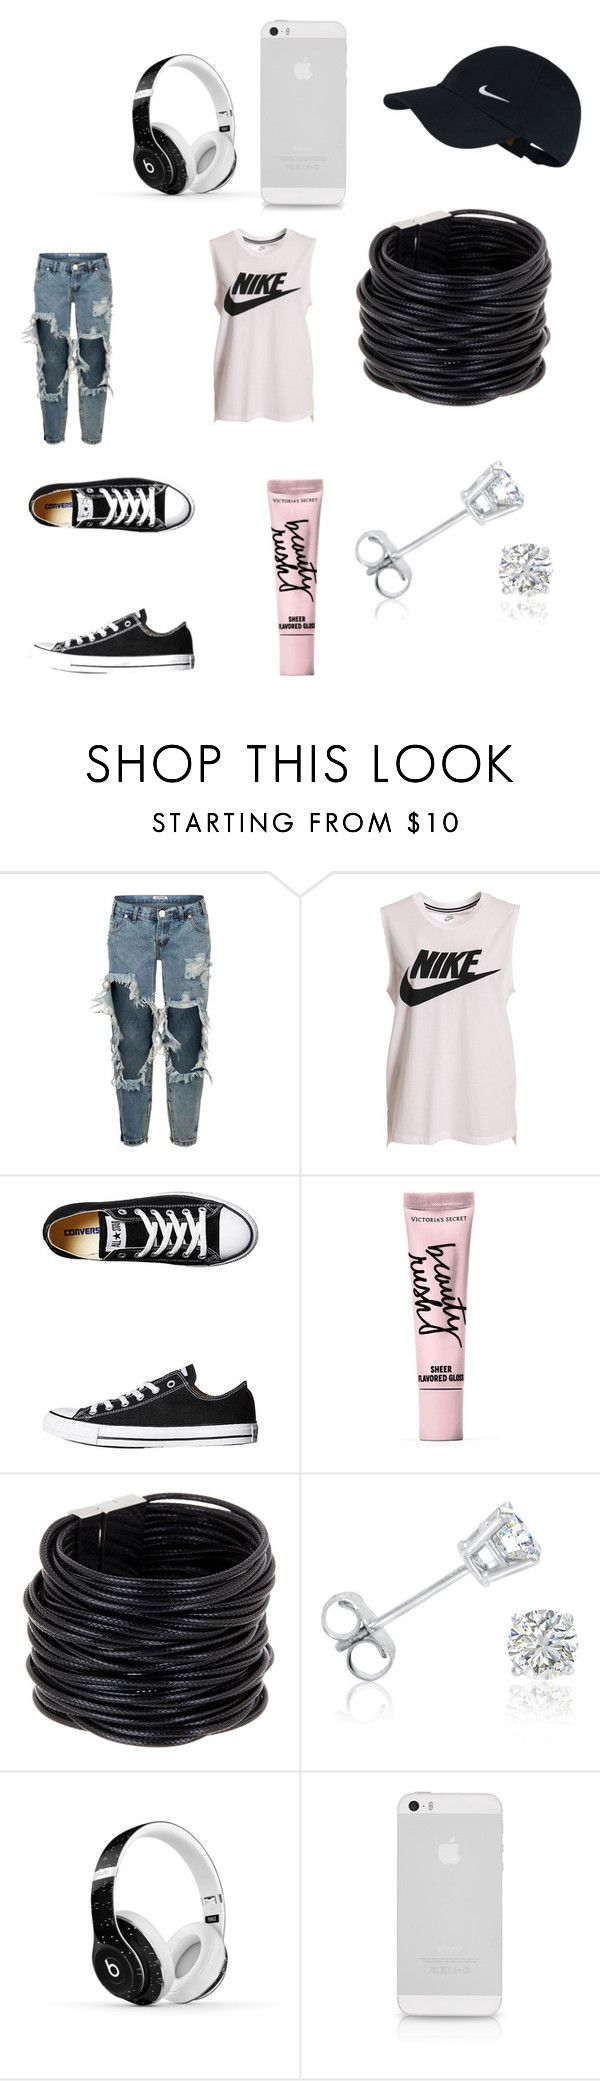 """""""Tomboy Tuesday"""" by lbk363 ❤ liked on Polyvore featuring One Teaspoon, NIKE, Converse, Beauty Rush, Saachi, Amanda Rose Collection and Beats by Dr. Dre"""